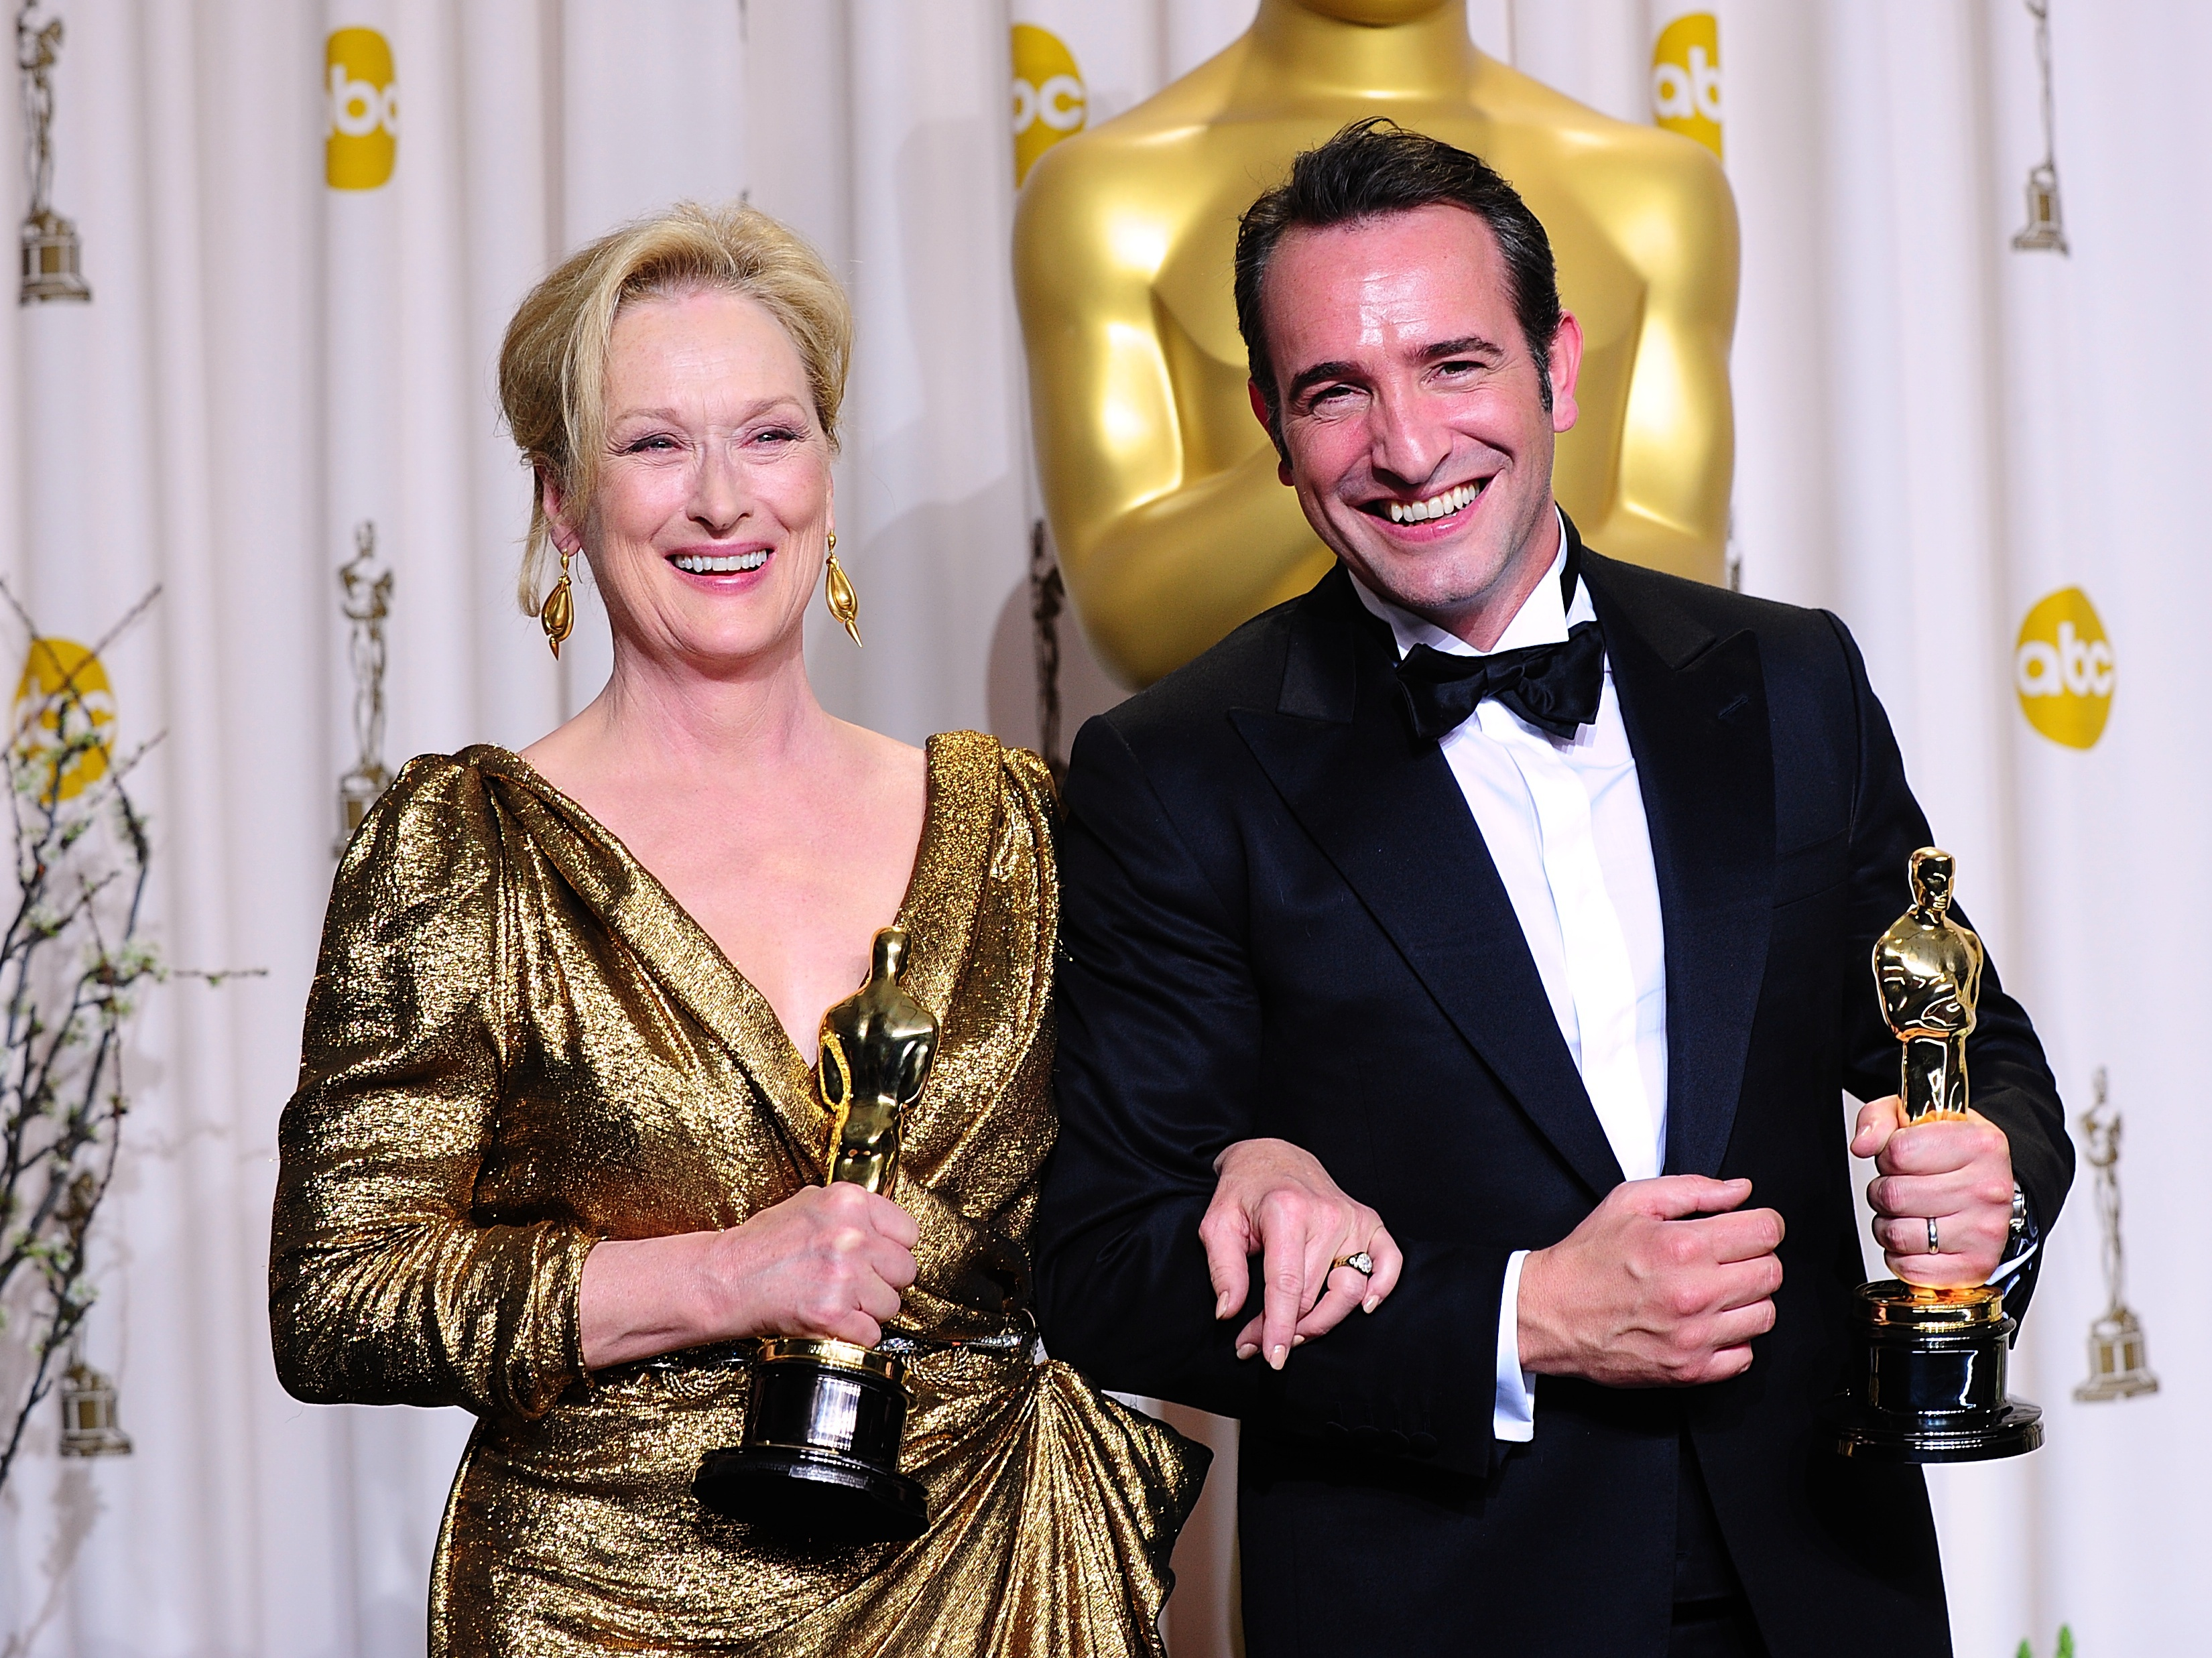 Jean Dujardin and Meryl Streep at the 84th Academy Awards